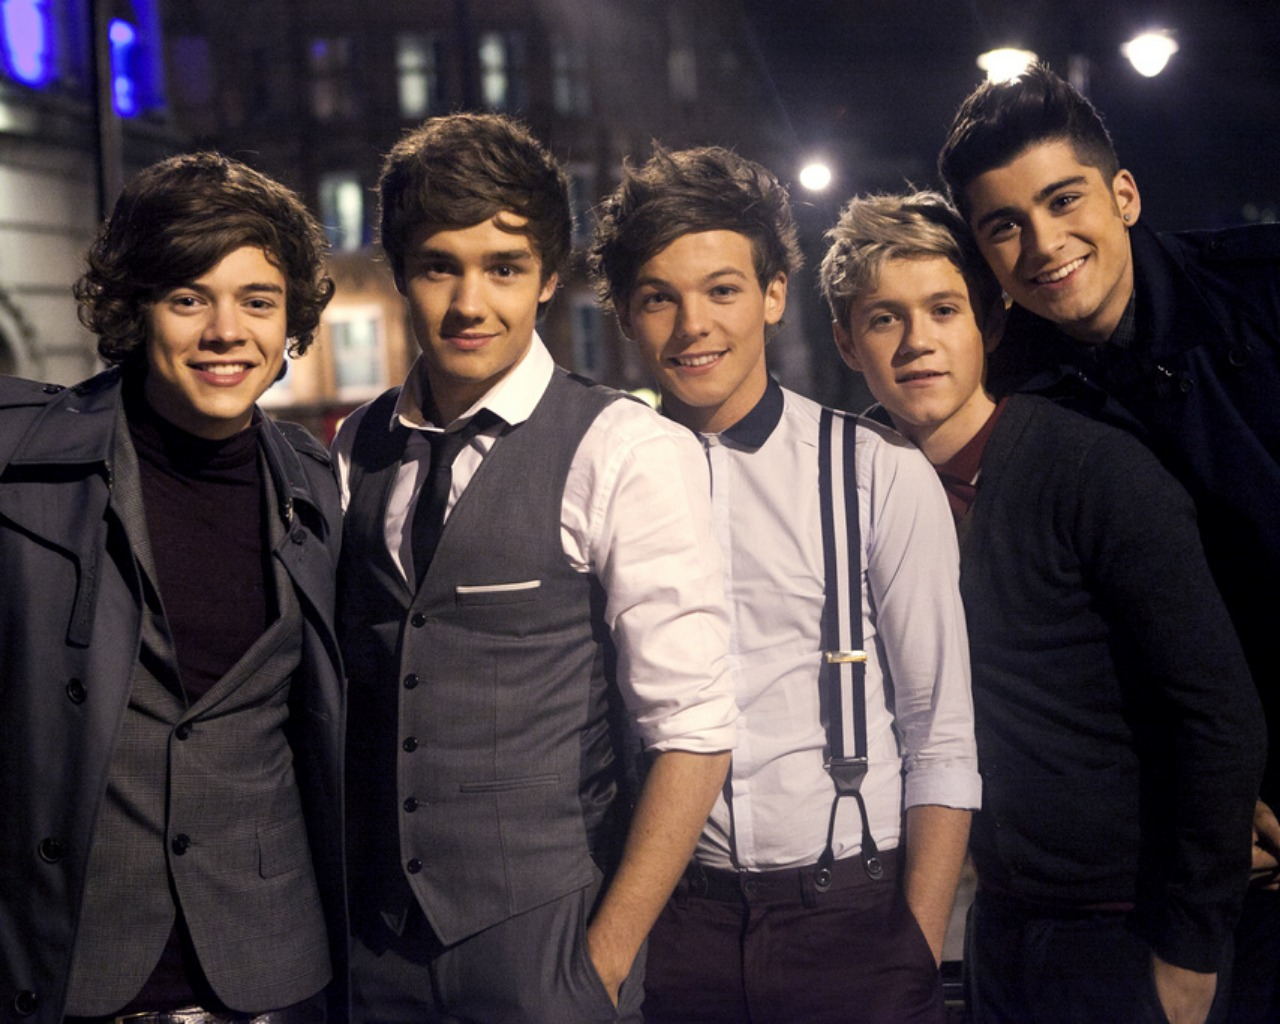 One Direction Images They Got That One Thing And We Lamour That One